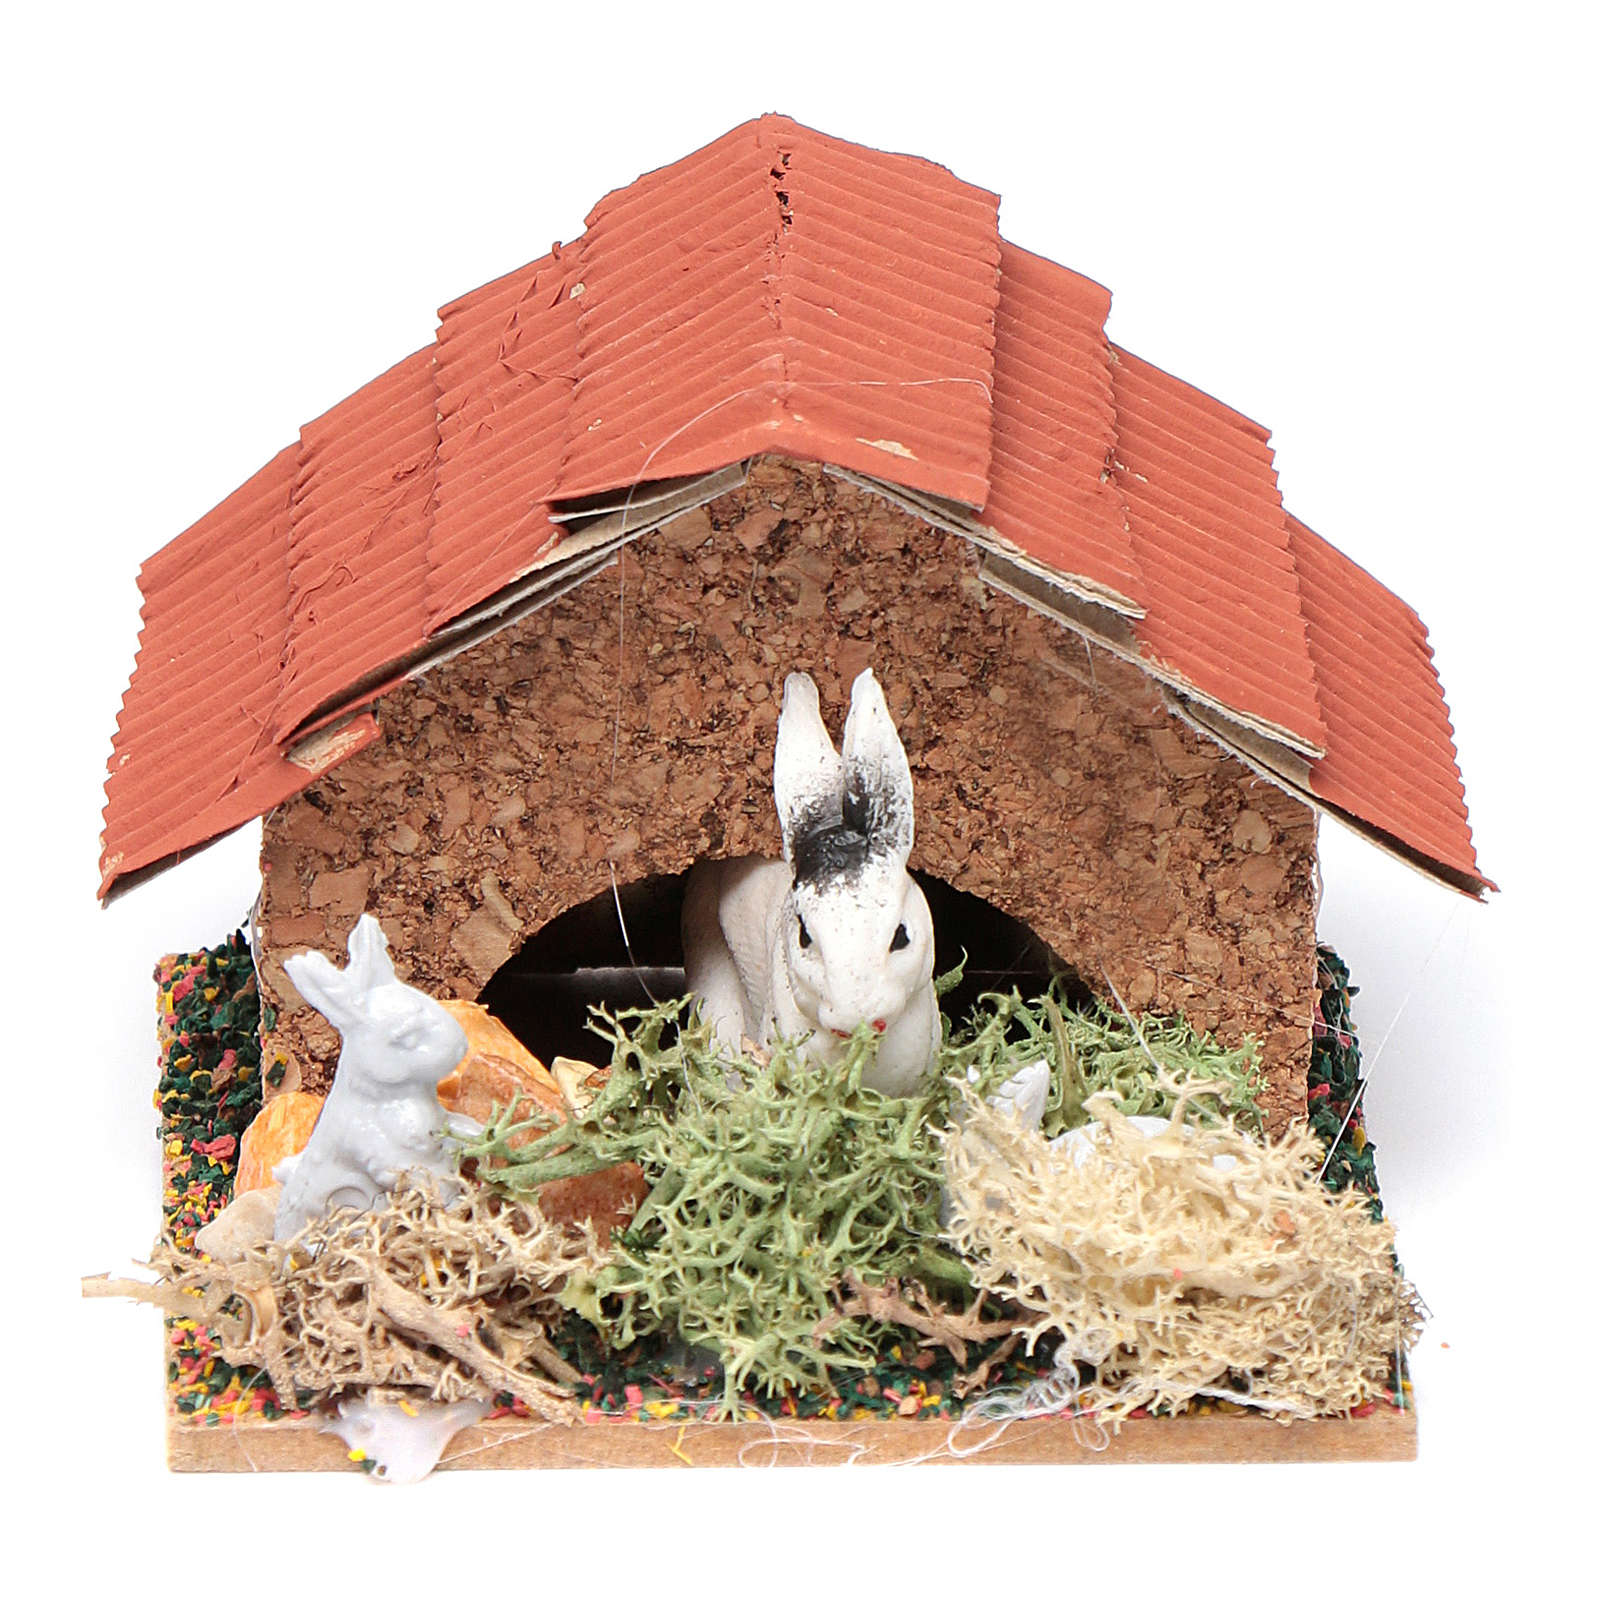 Crib hutch with rabbits 3